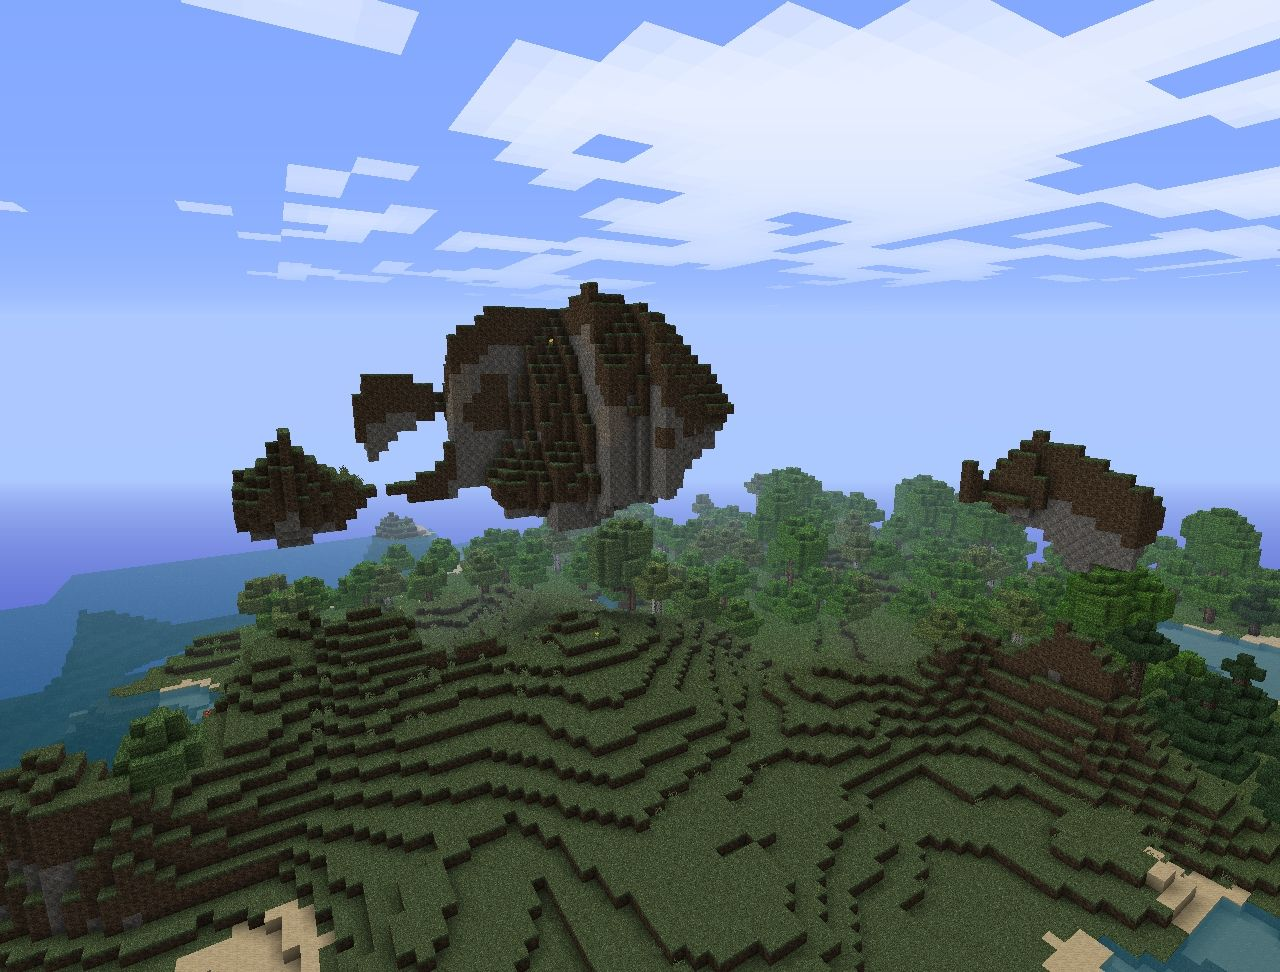 Some floating islands